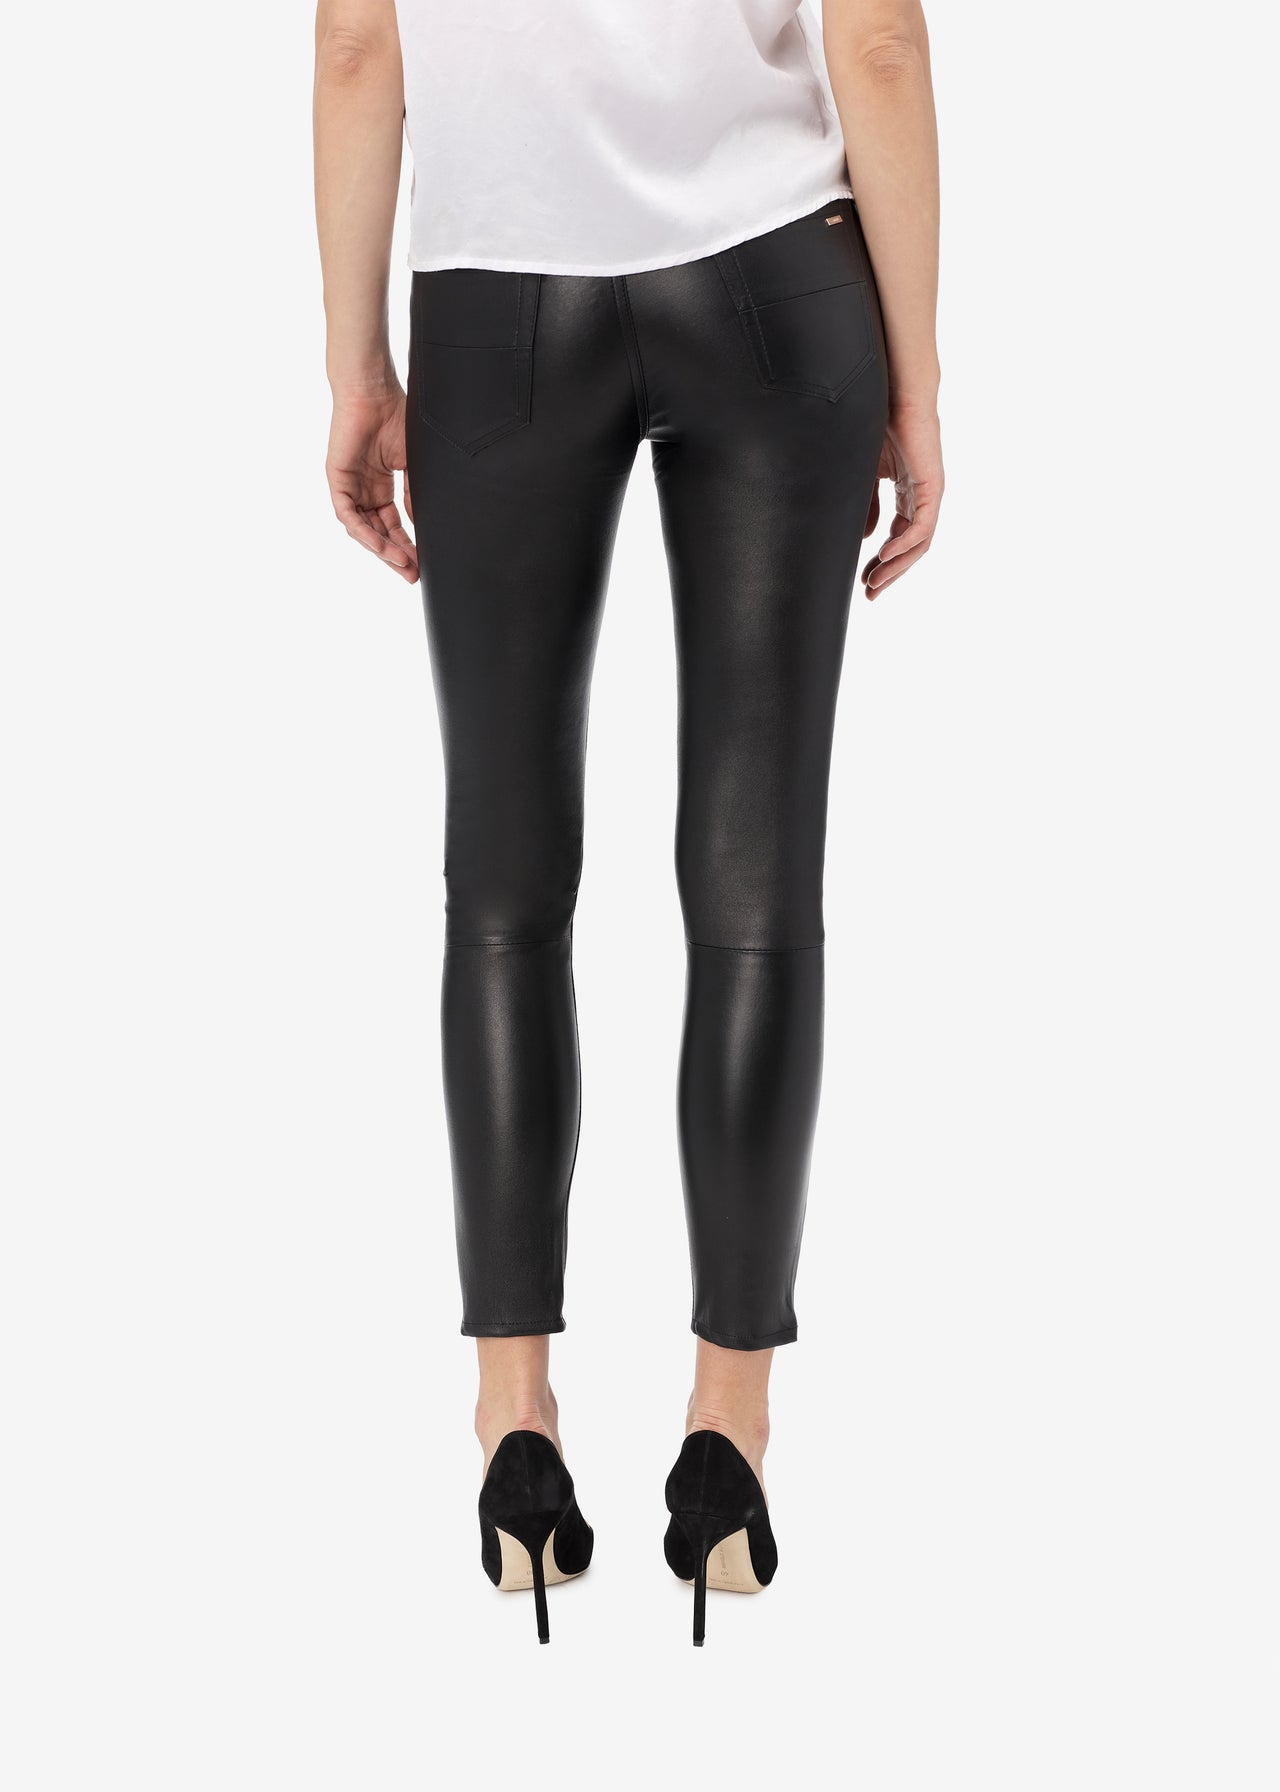 5 POCKET STRETCH LEATHER PANT - BLACK